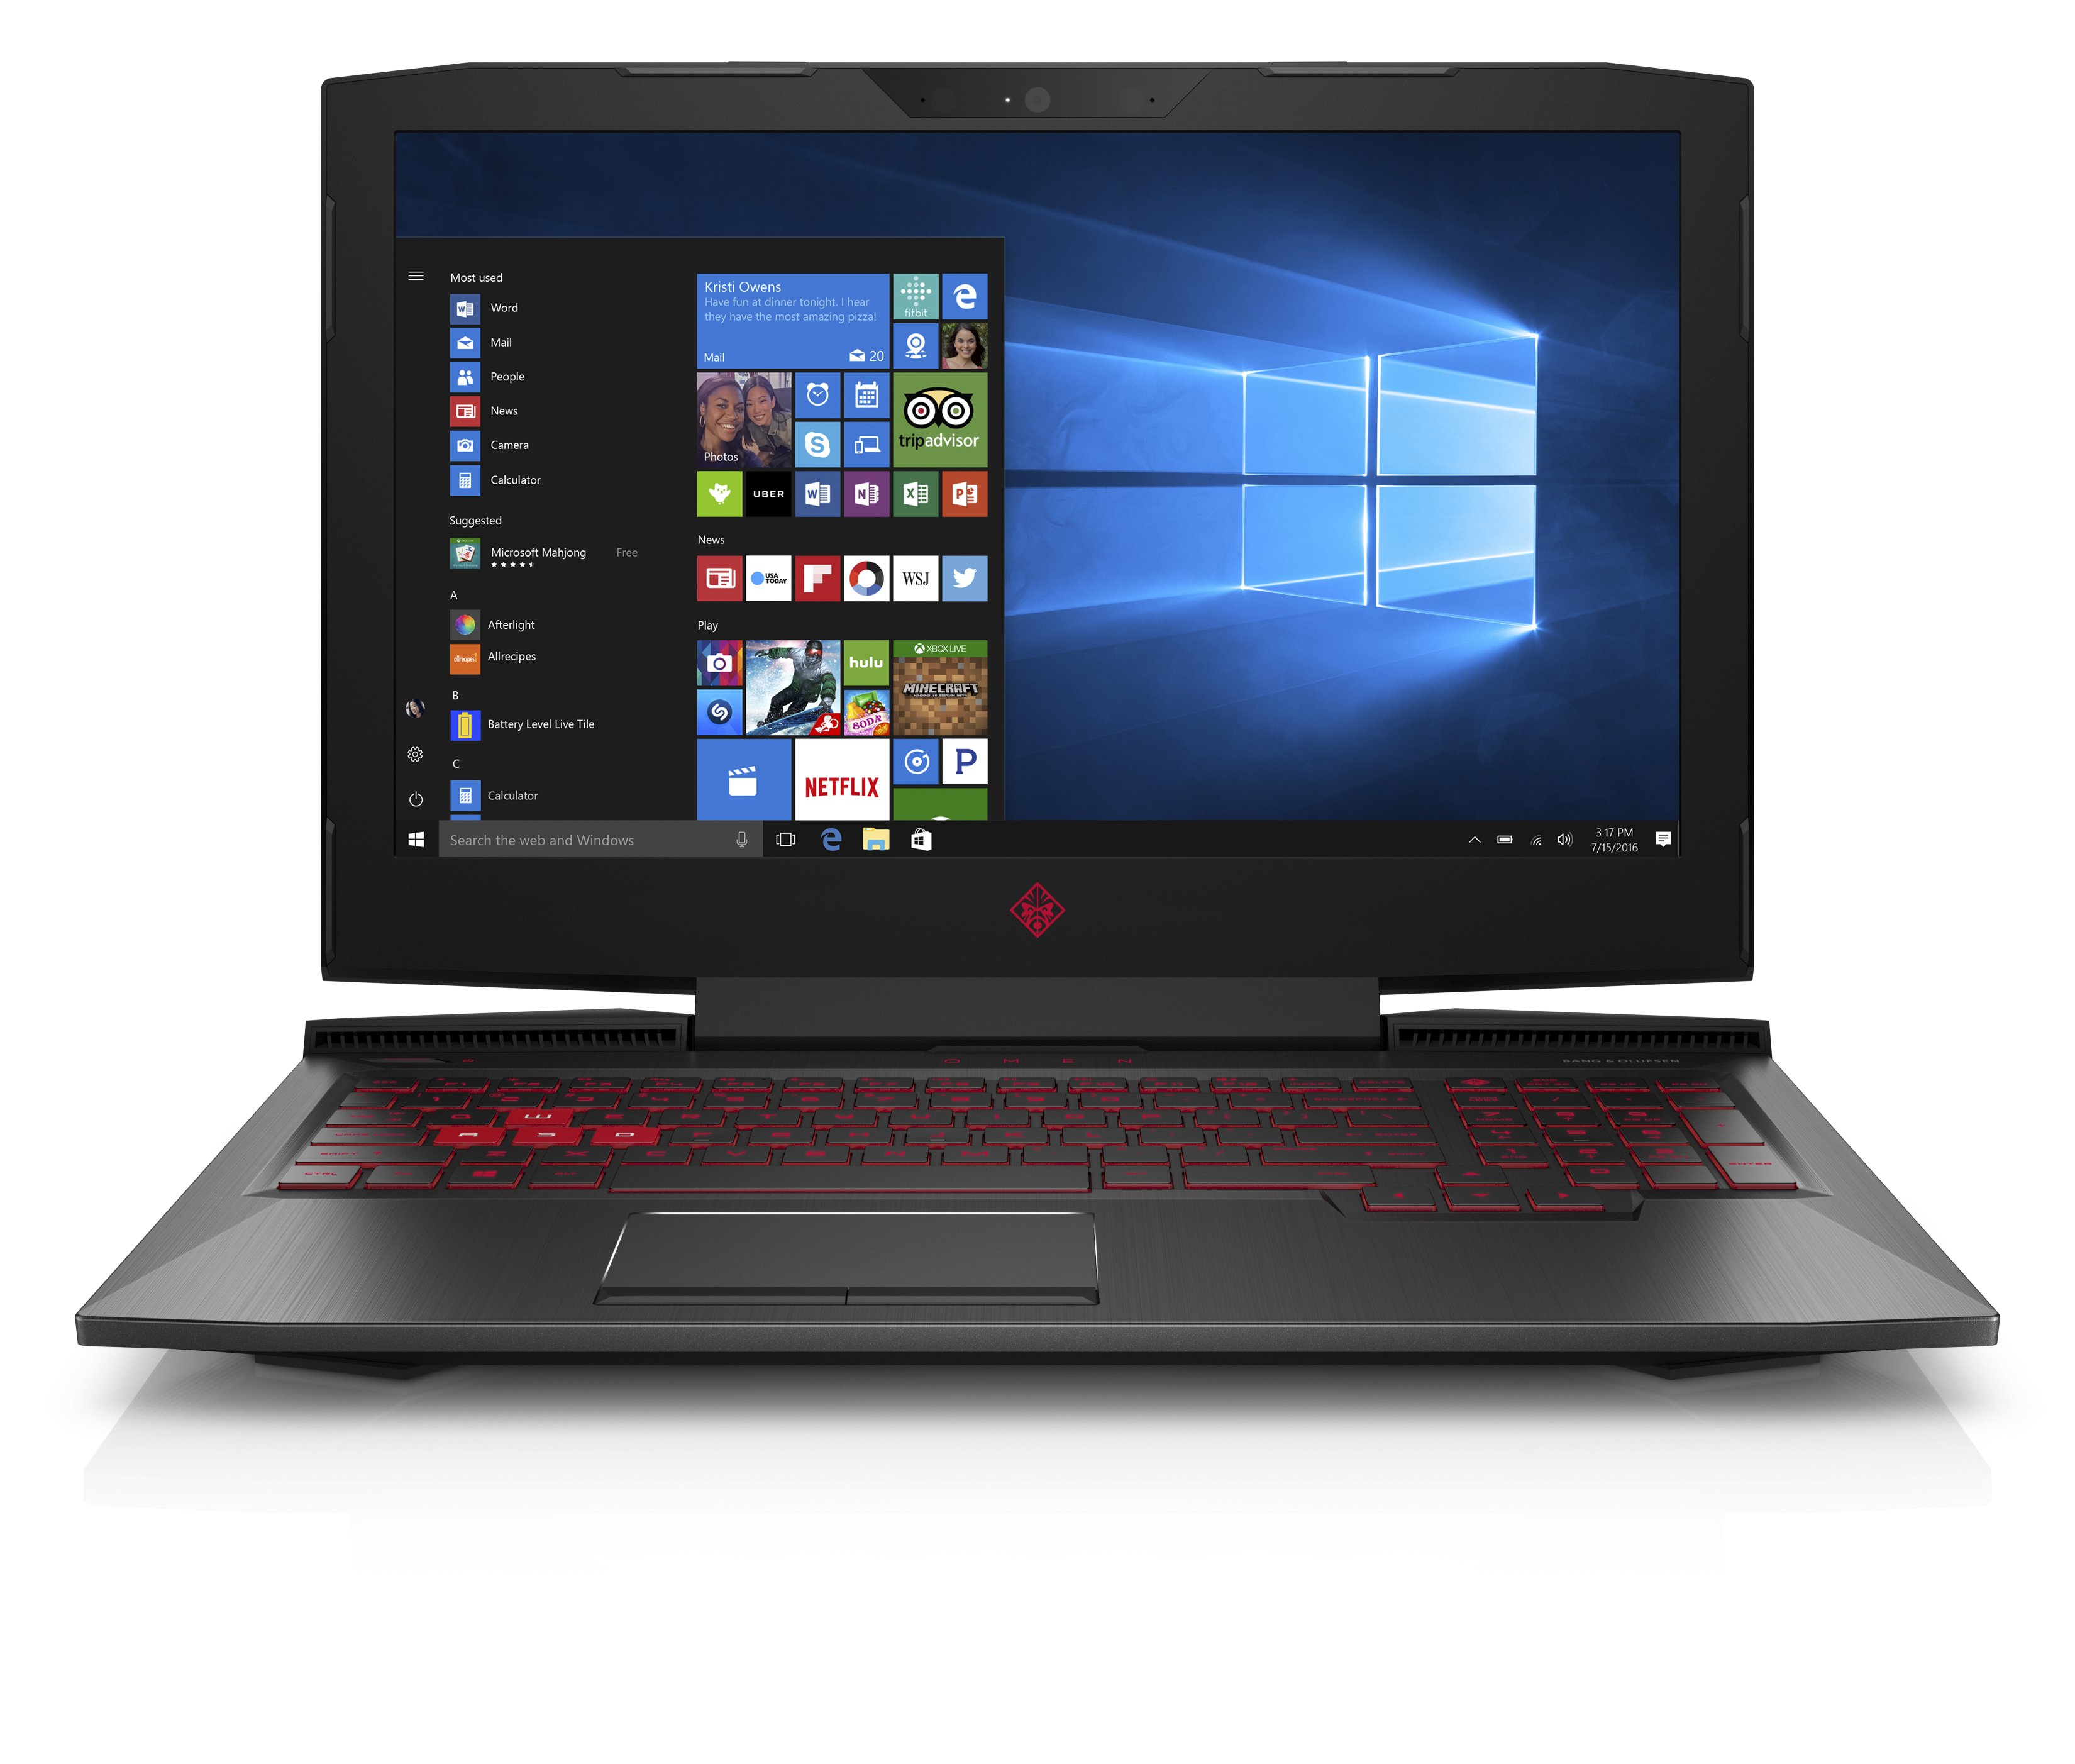 Hp notebook desktop - Hp S Omen Laptops Are Also Getting A Refresh With Both The Omen 15 And Omen 17 Getting A Refresh Although On The Desktop Hp Is Offering Amd Ryzen